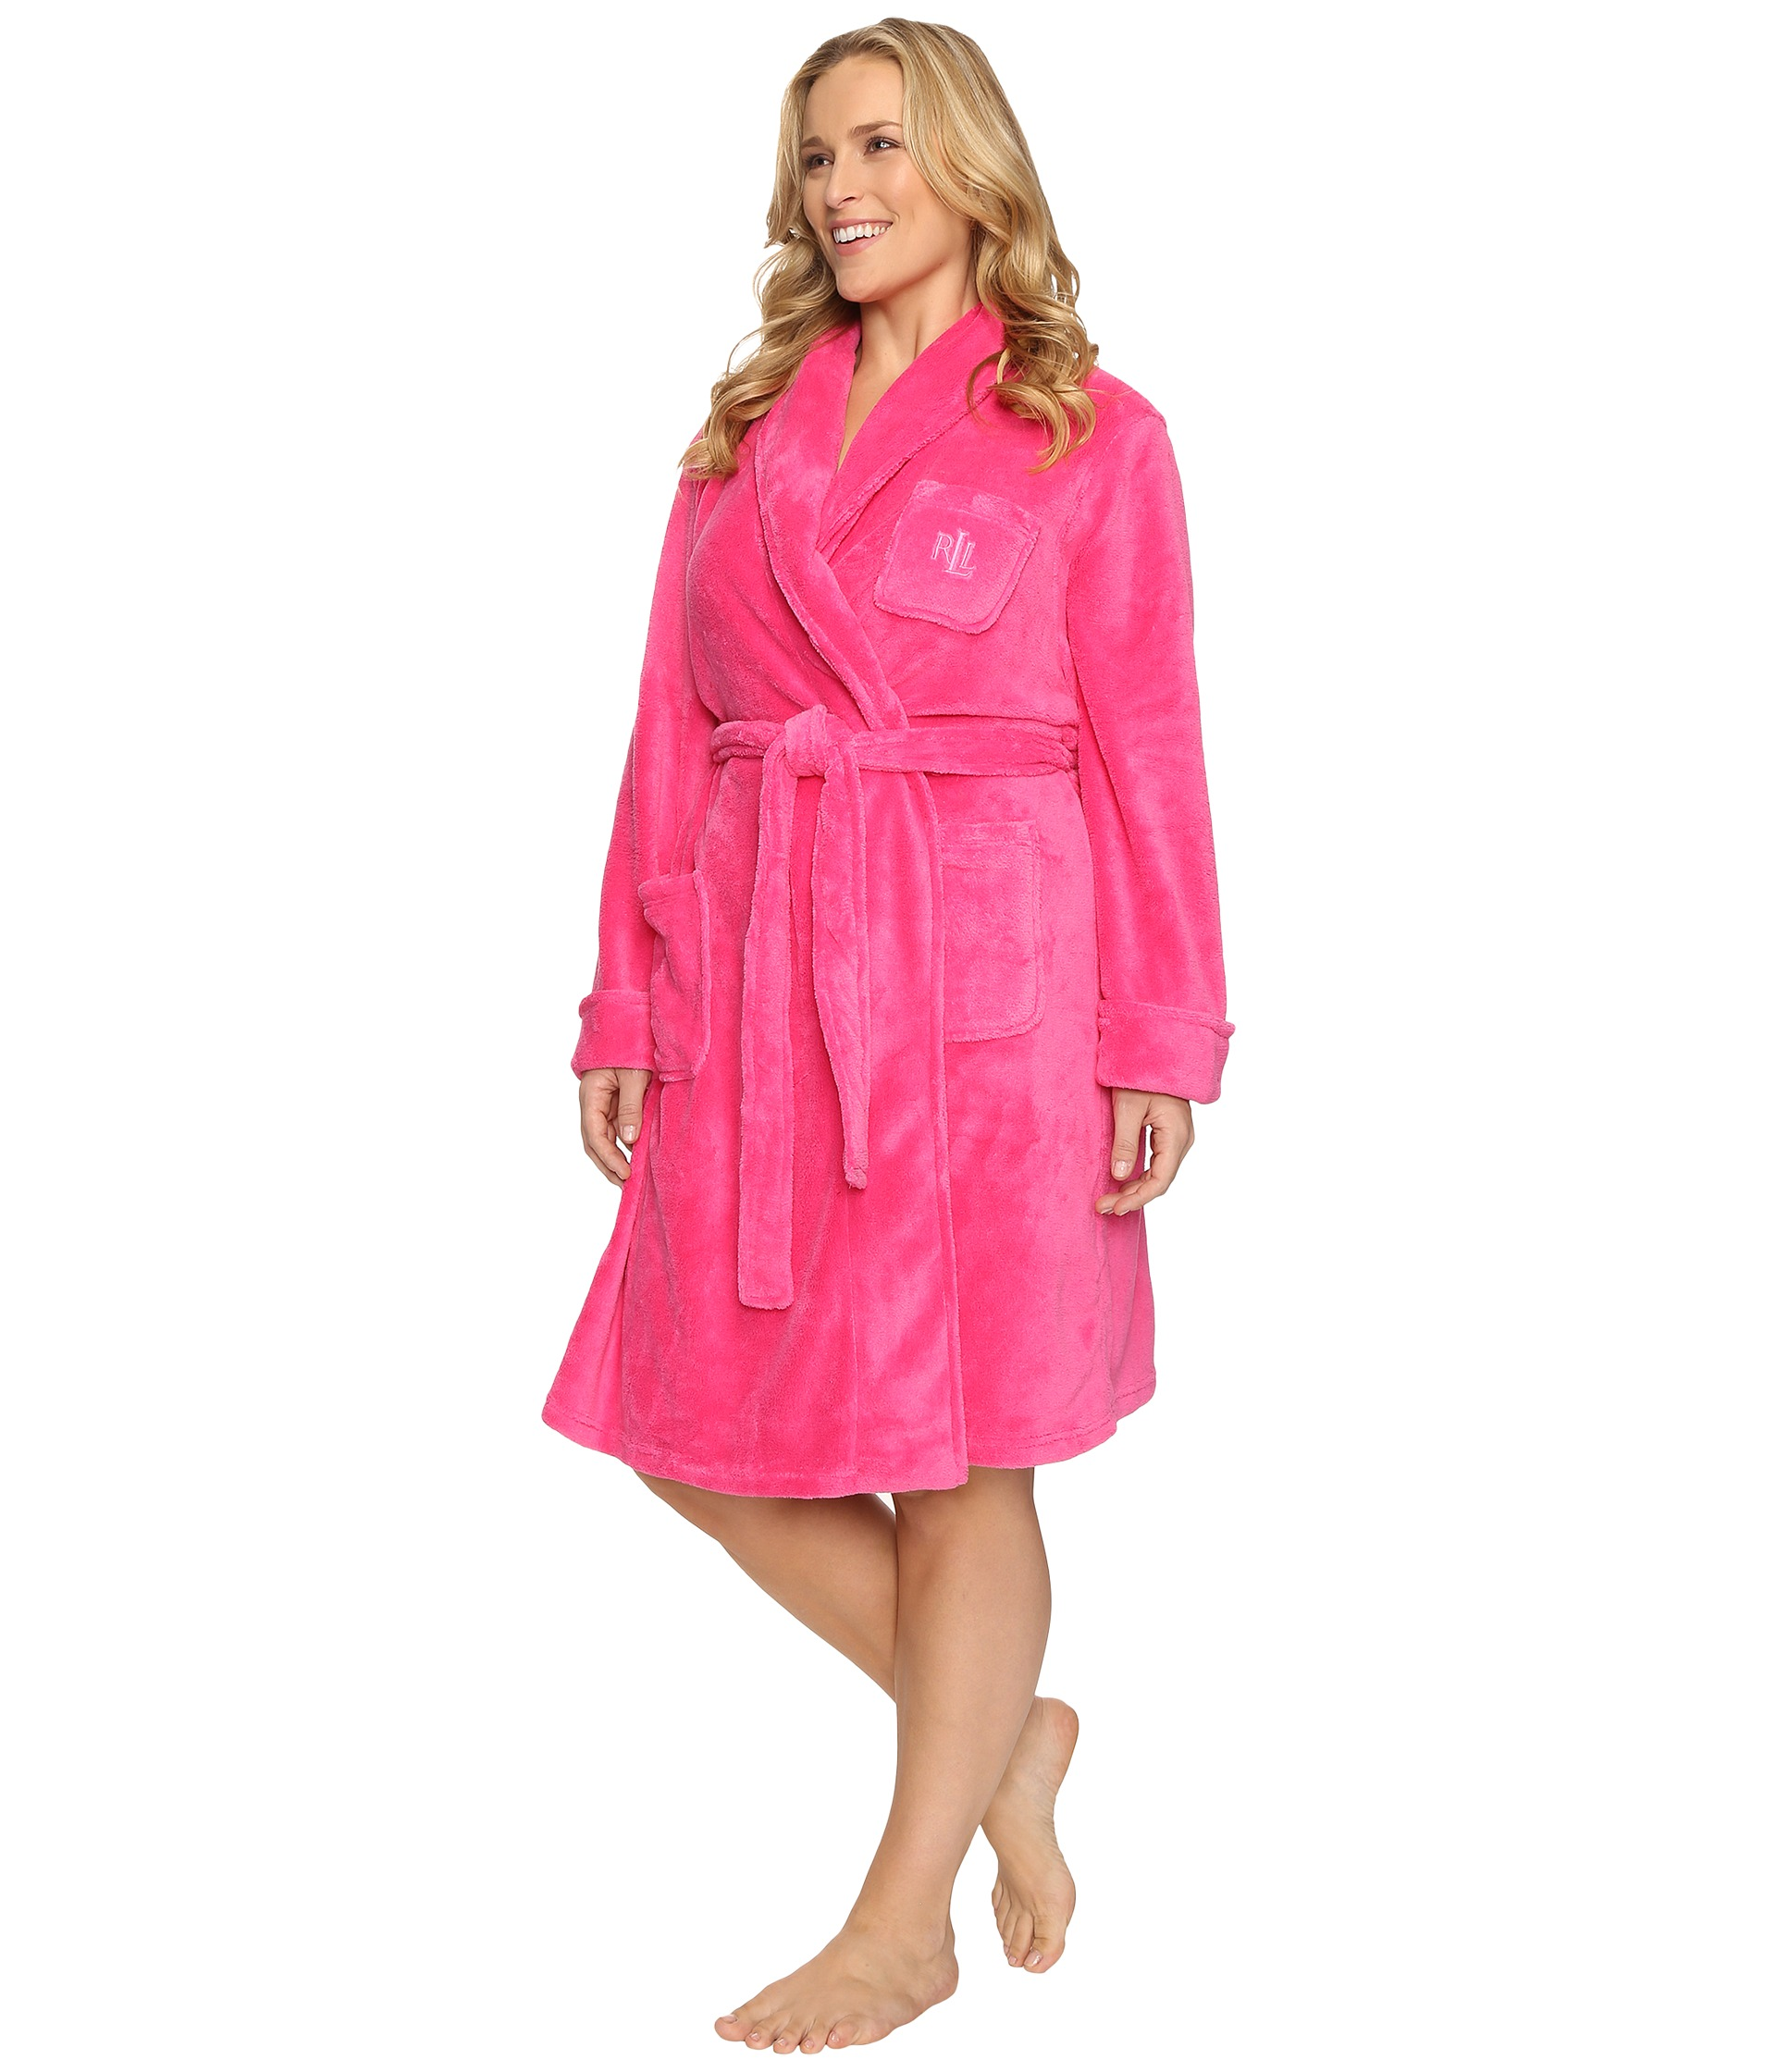 lauren ralph lauren plus size so soft short robe pink free shipping both ways. Black Bedroom Furniture Sets. Home Design Ideas